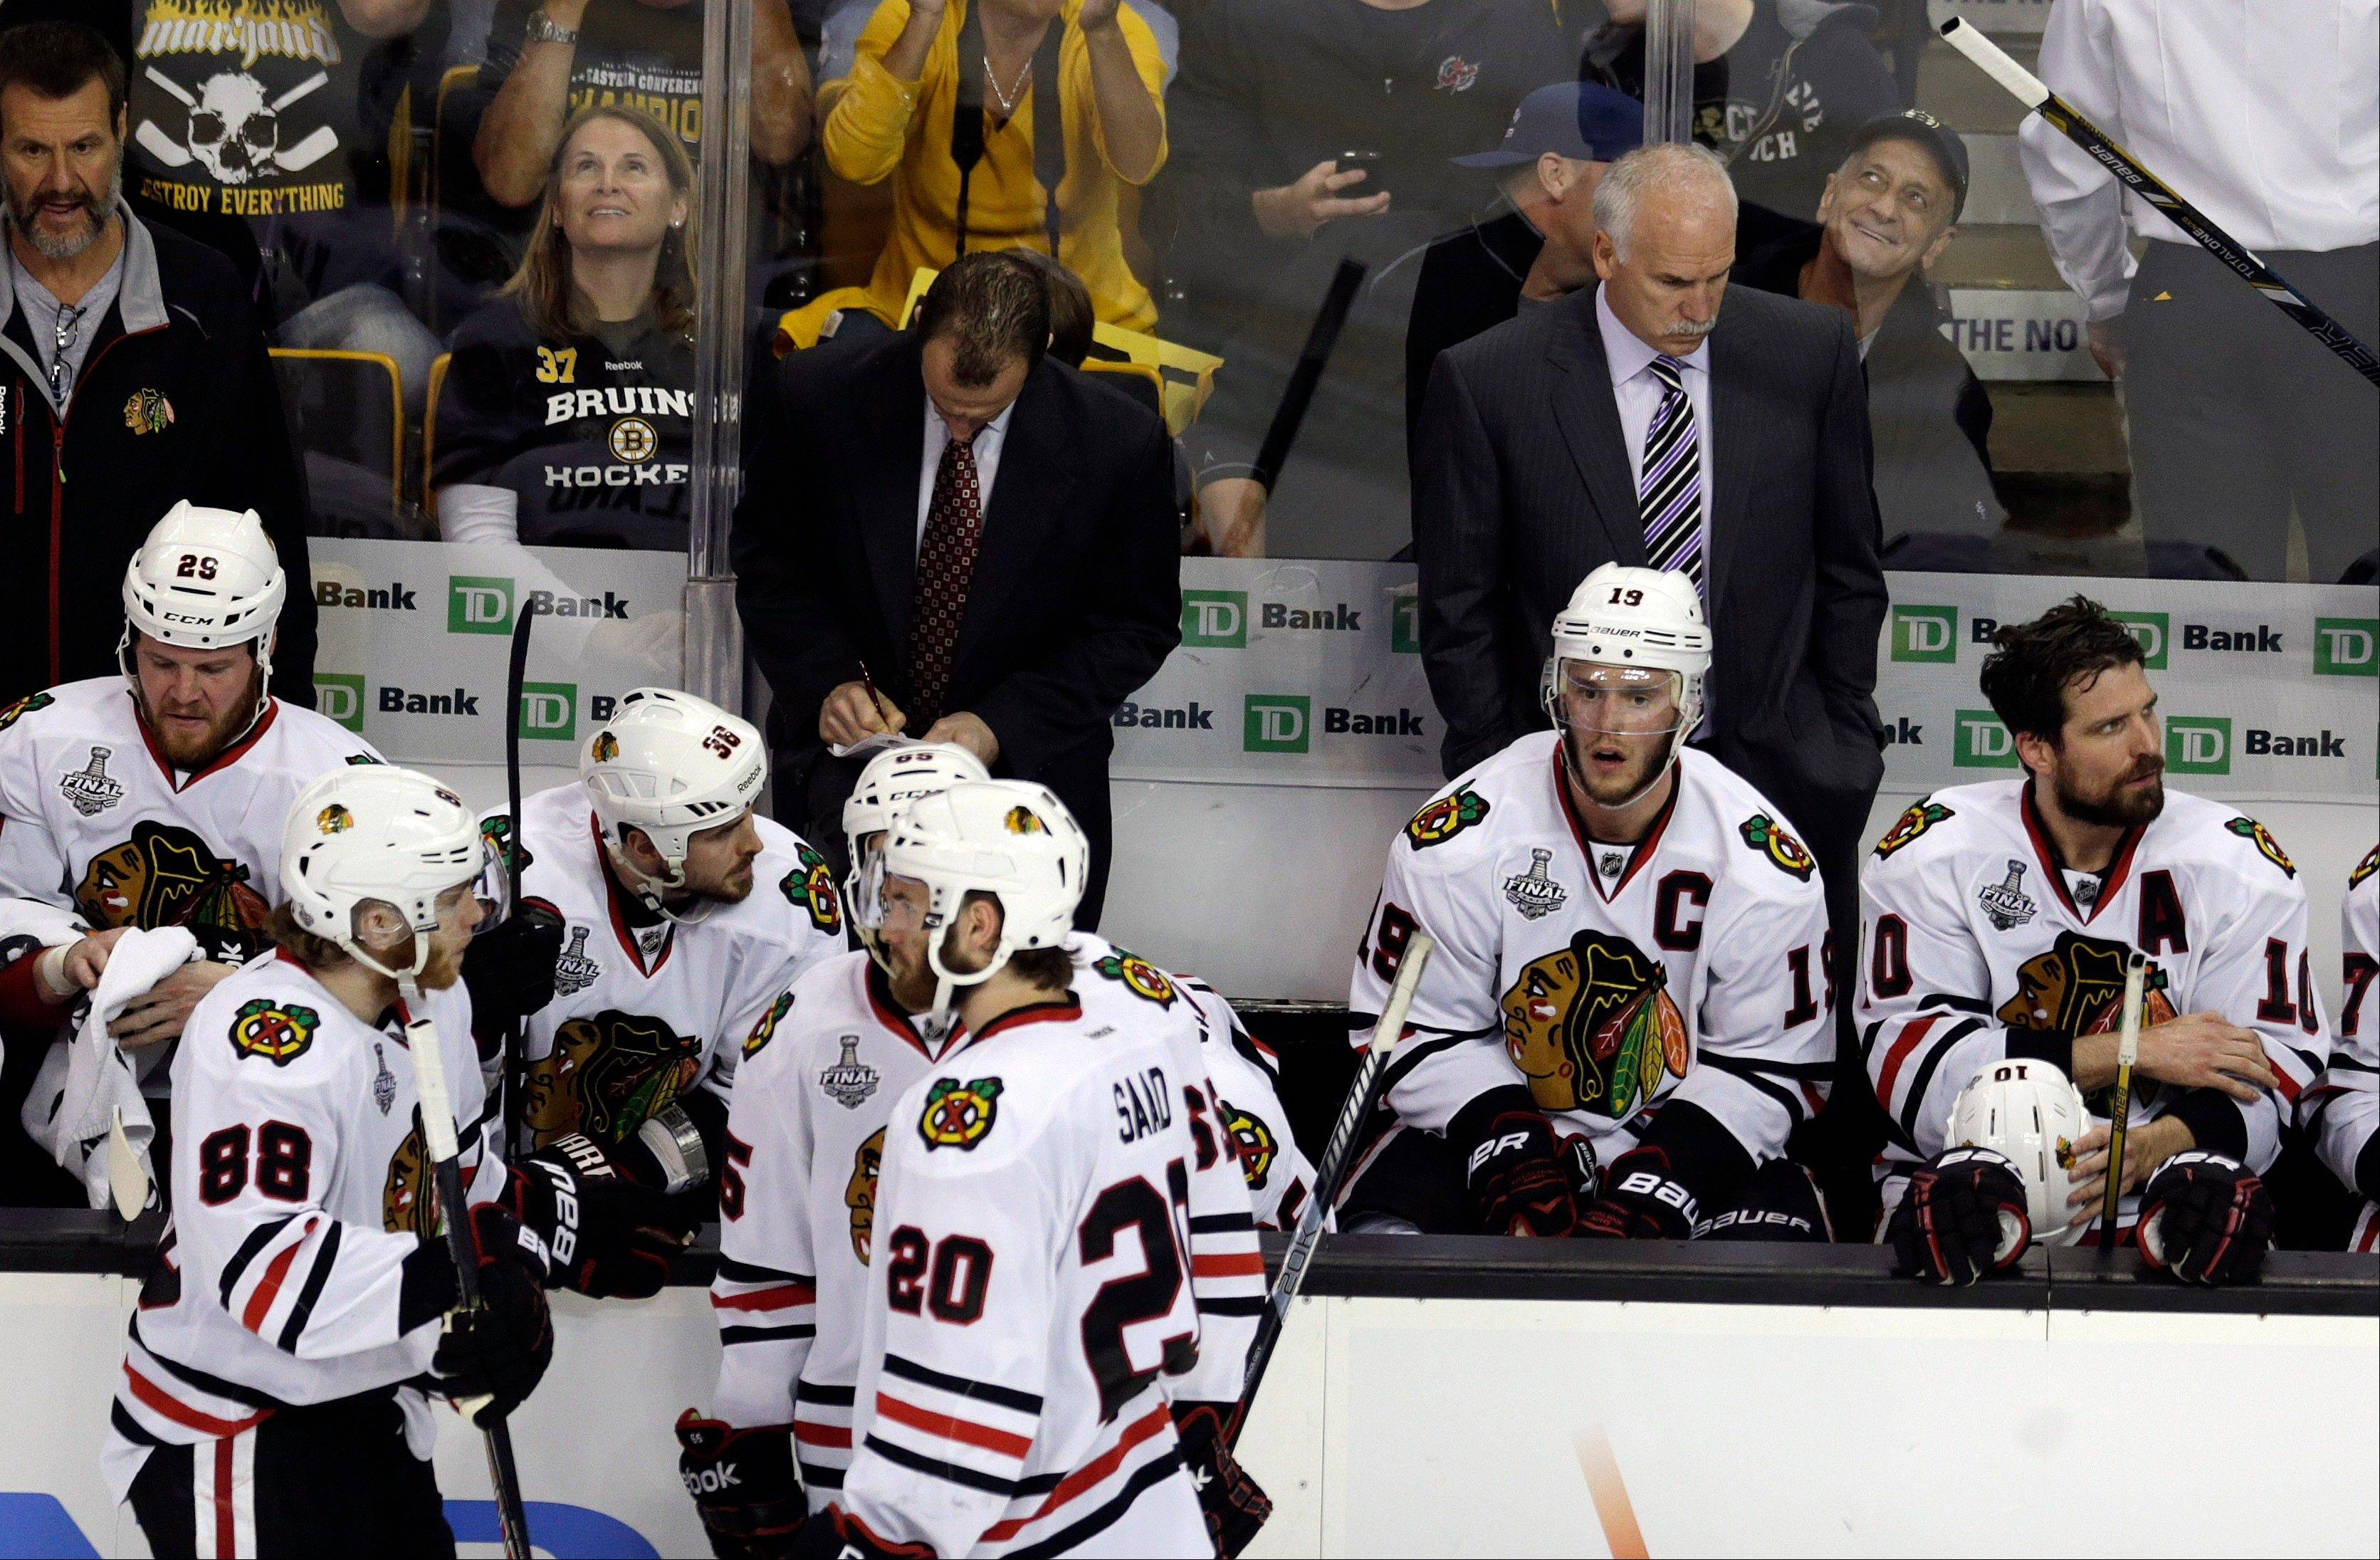 Chicago Blackhawks head coach Joel Quenneville, right, team captain Jonathan Toews (19) and their team pause during a break in pay in the third period in Game 3 of the NHL hockey Stanley Cup Finals against the Boston Bruins.